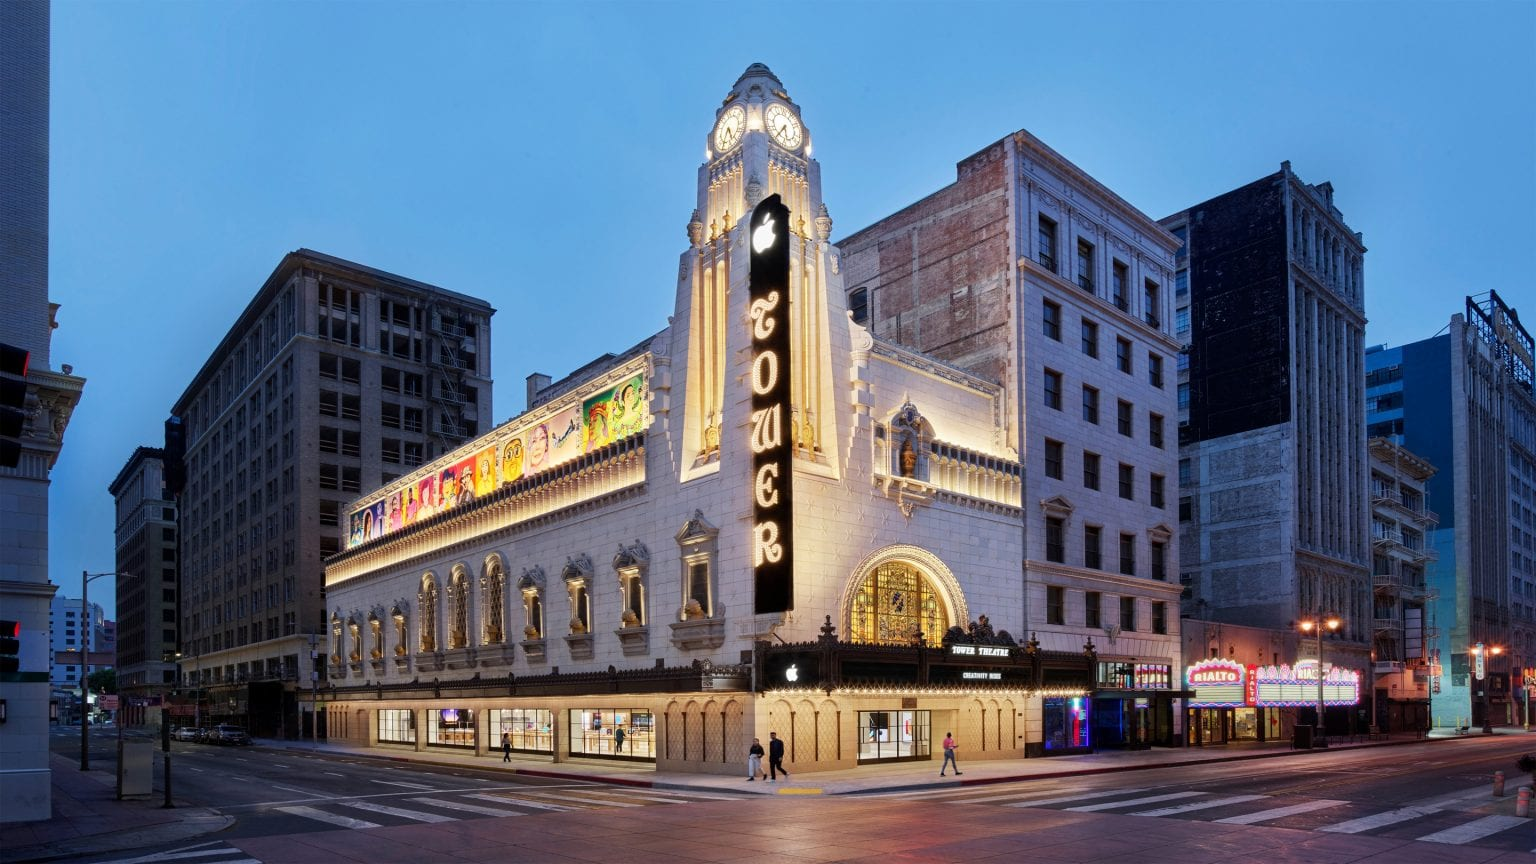 Many Angelenos on the hunt for Apple gear will recognize the historic theater's restored clocktower and sign. But the interior will blow them away.